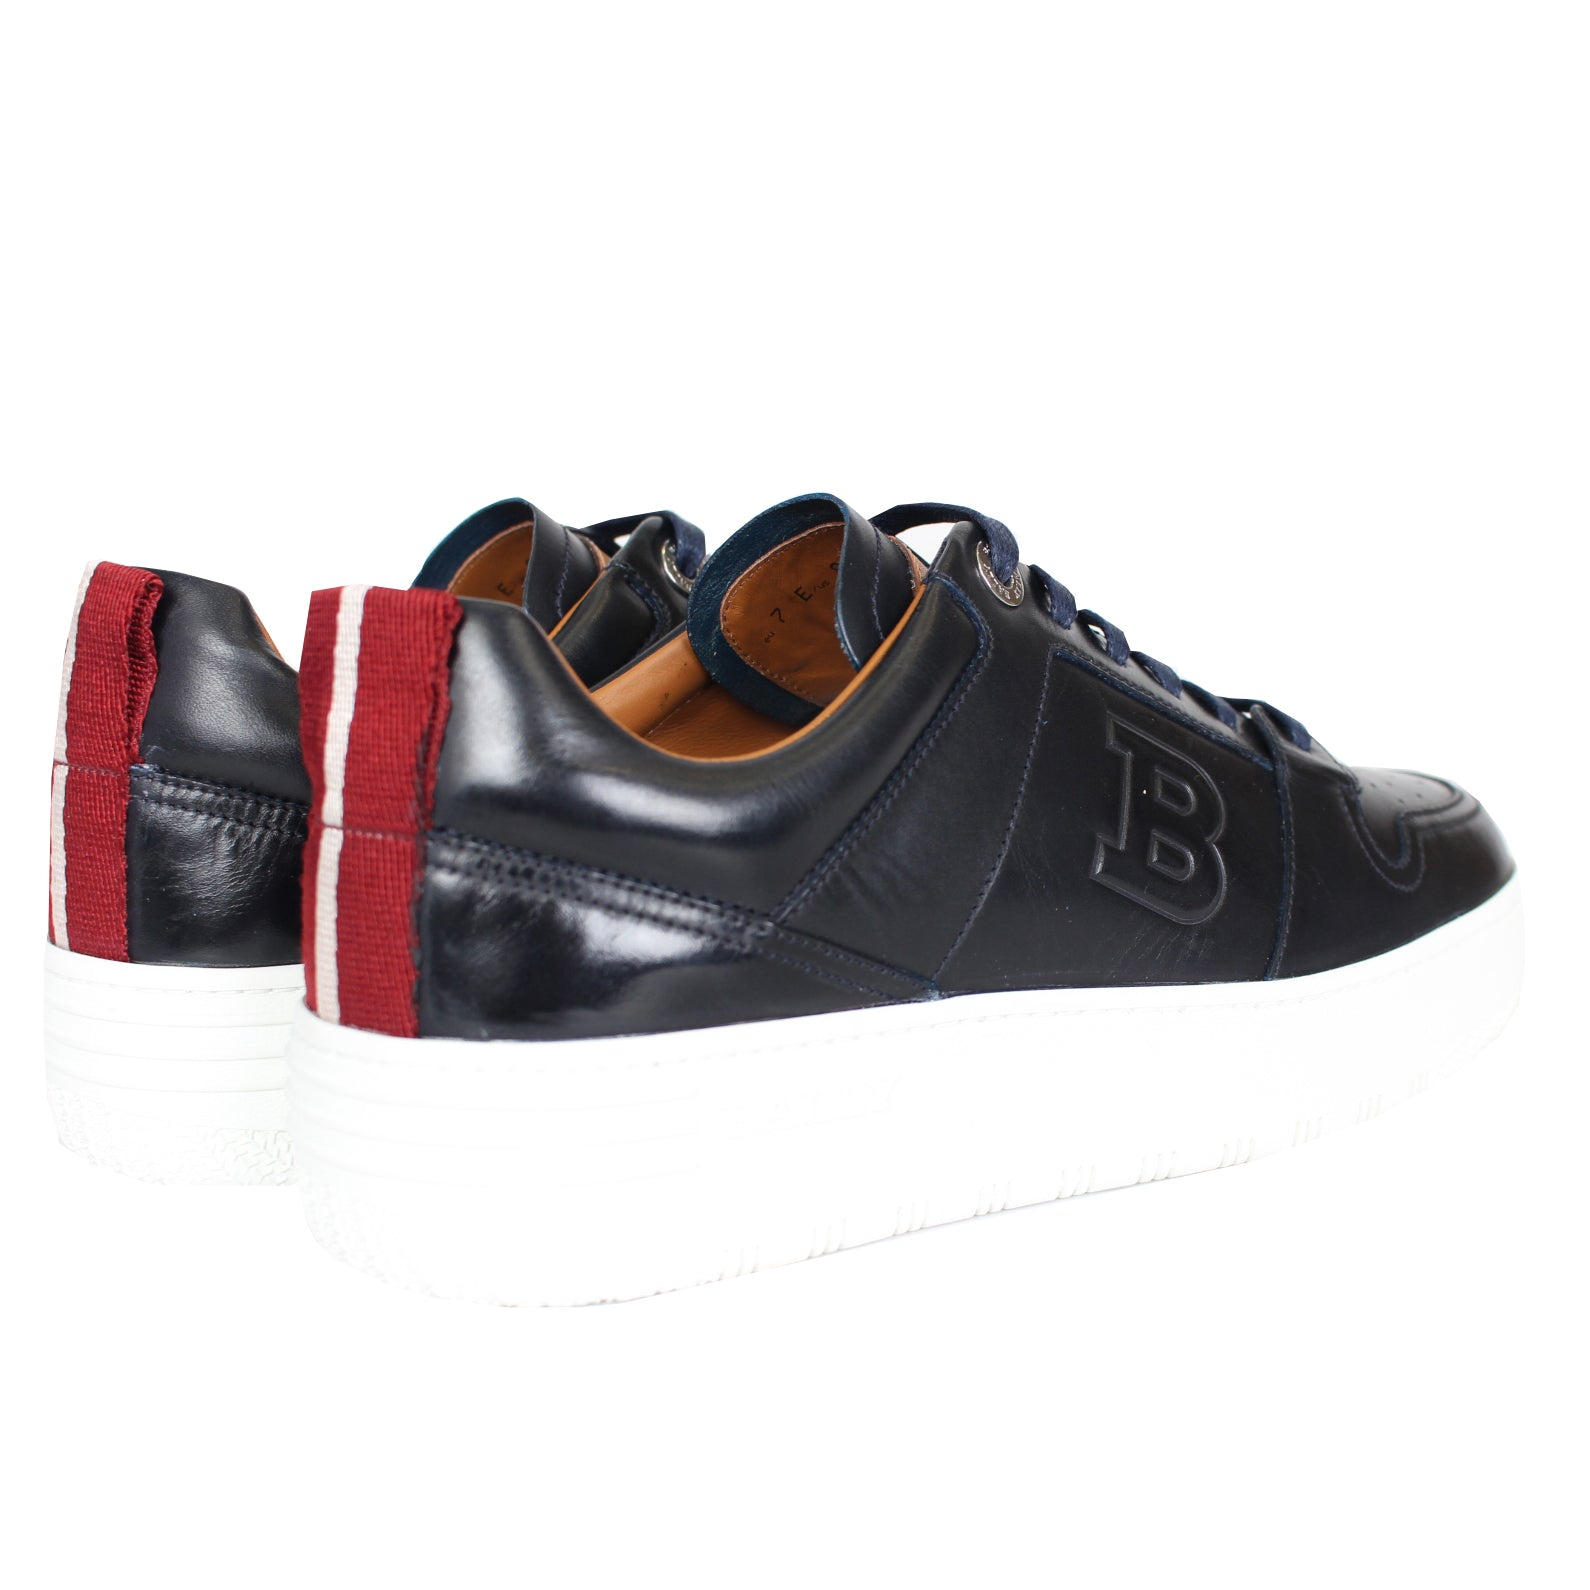 Odino/506 | Men's Leather Low-Top Sneaker in Black